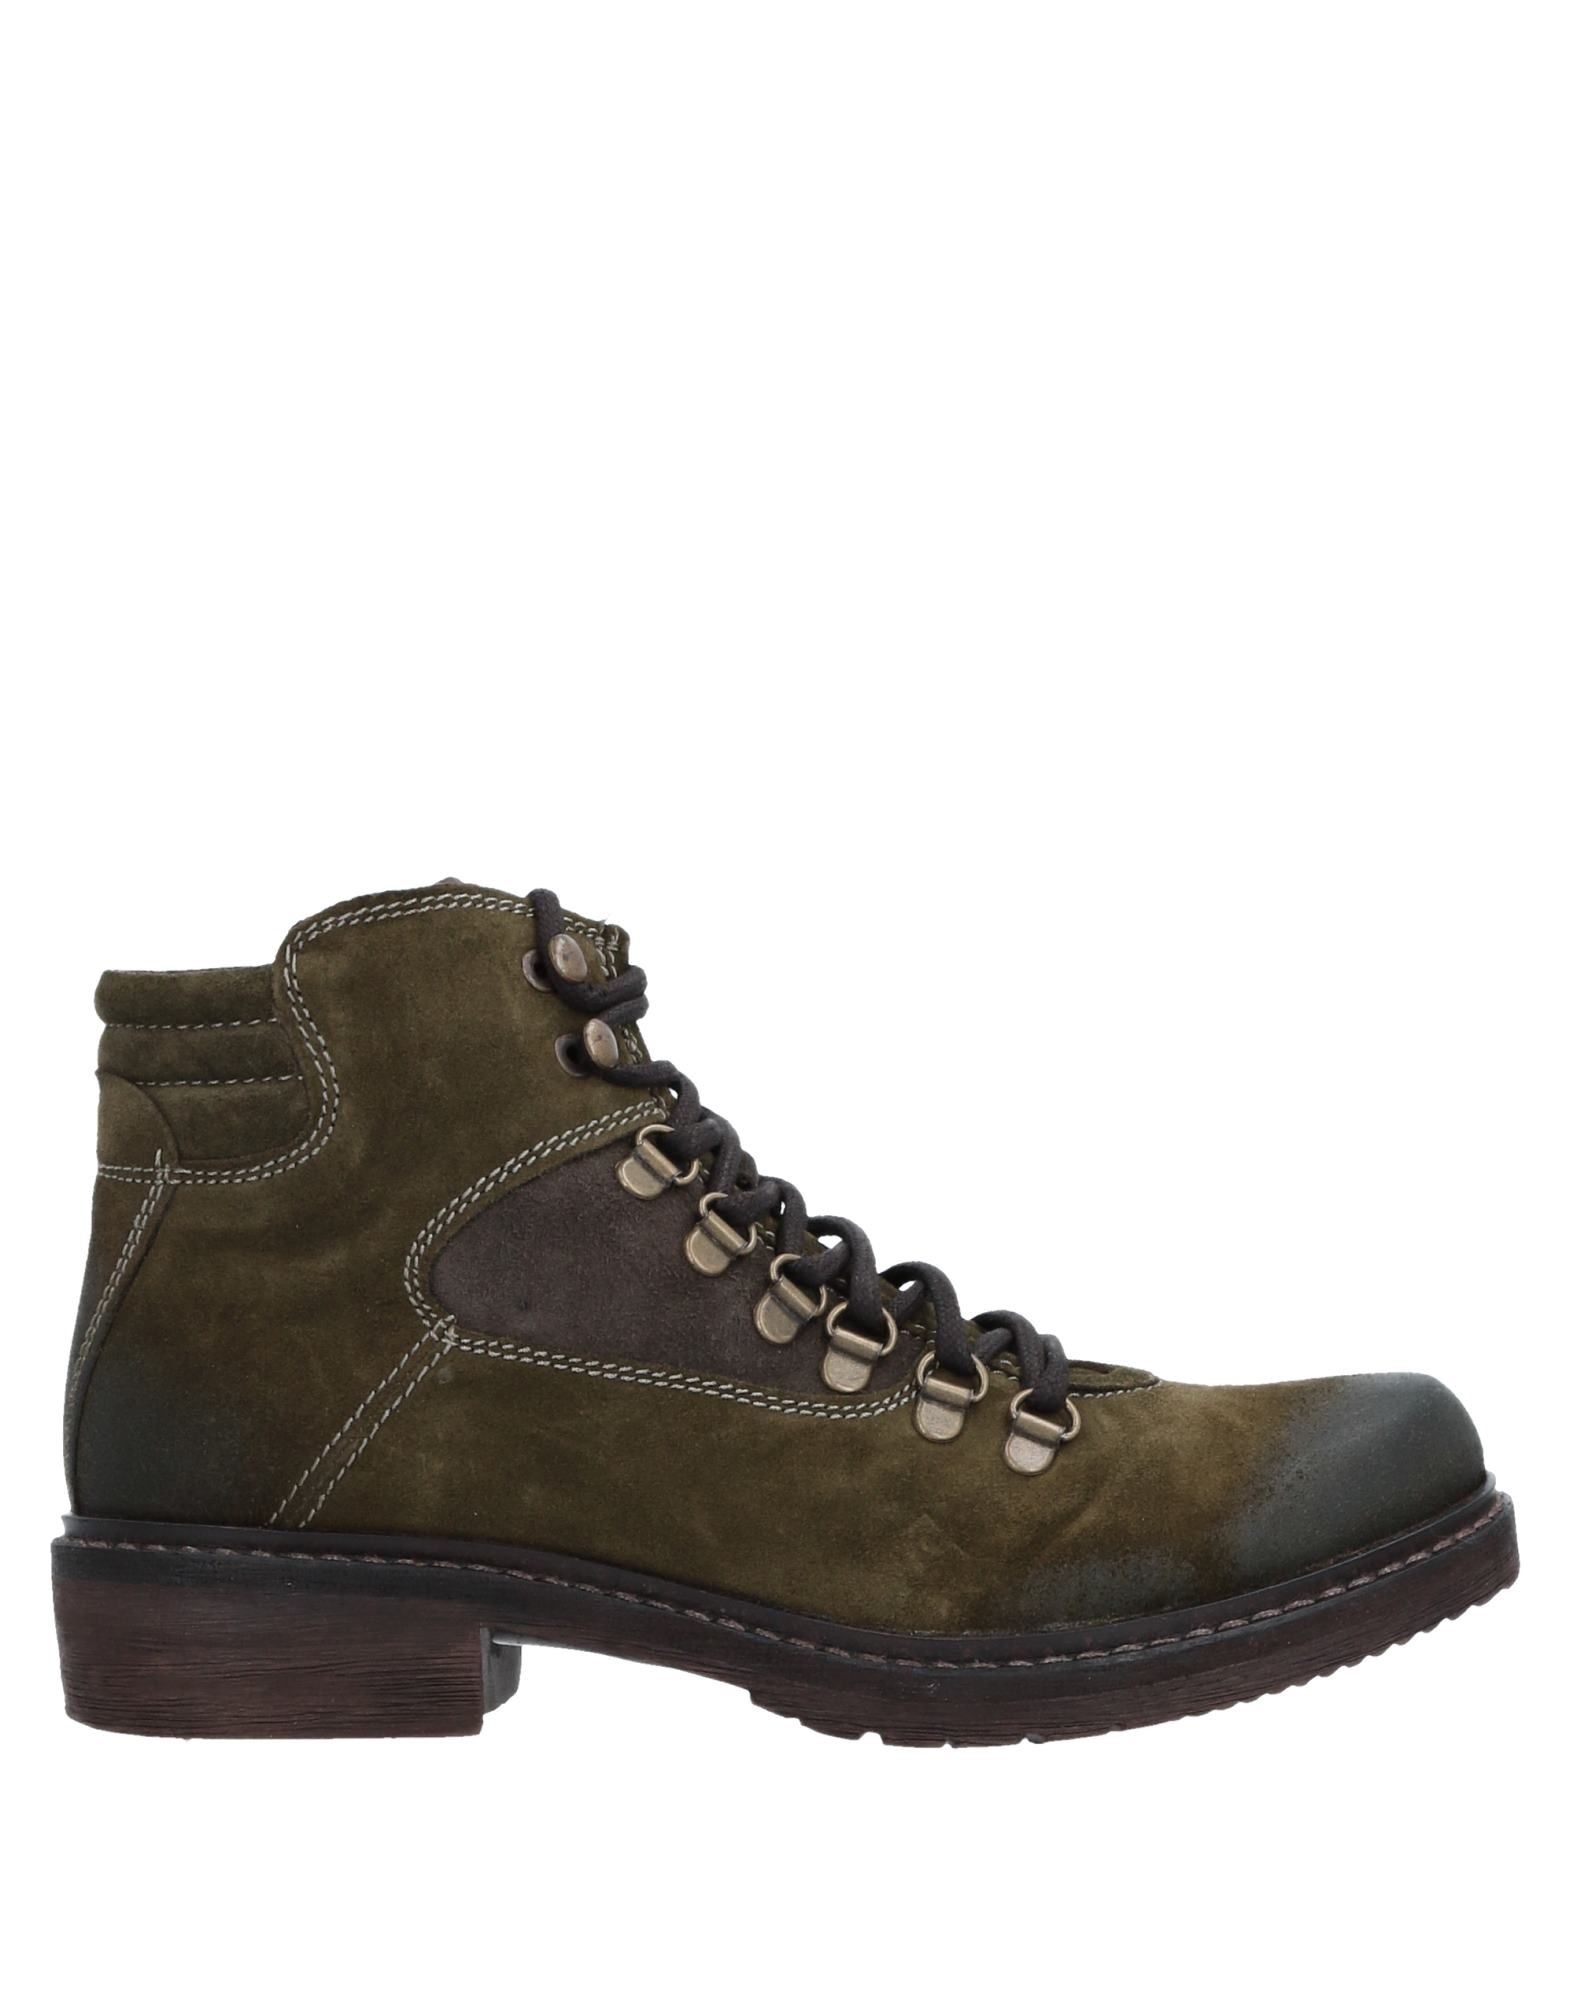 MANAS Ankle Boot in Military Green